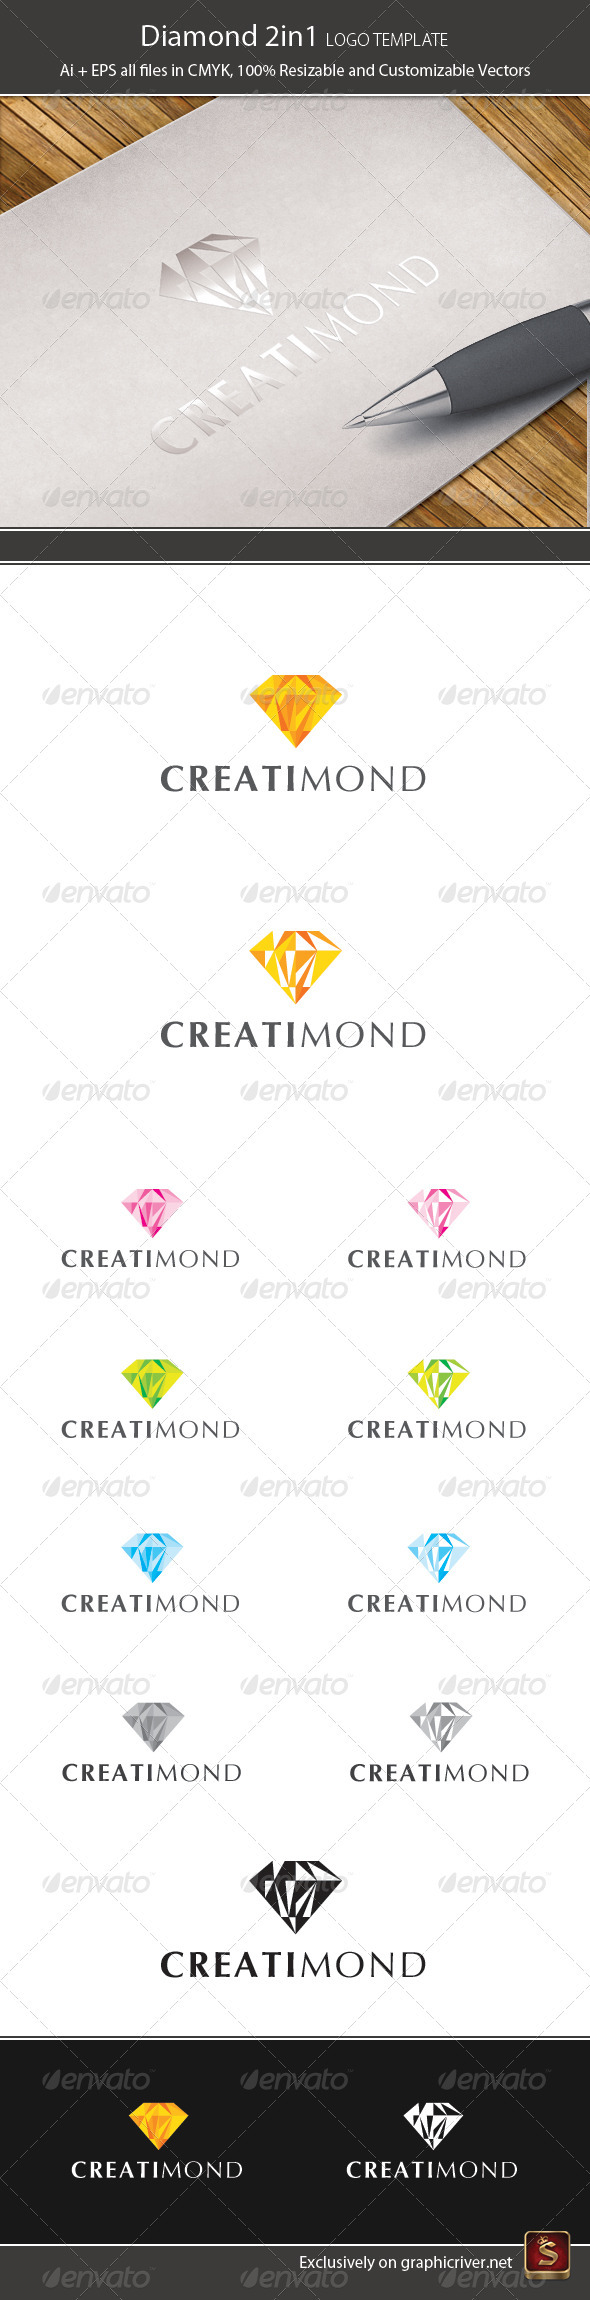 Diamond 2in1 Logo Template - Vector Abstract